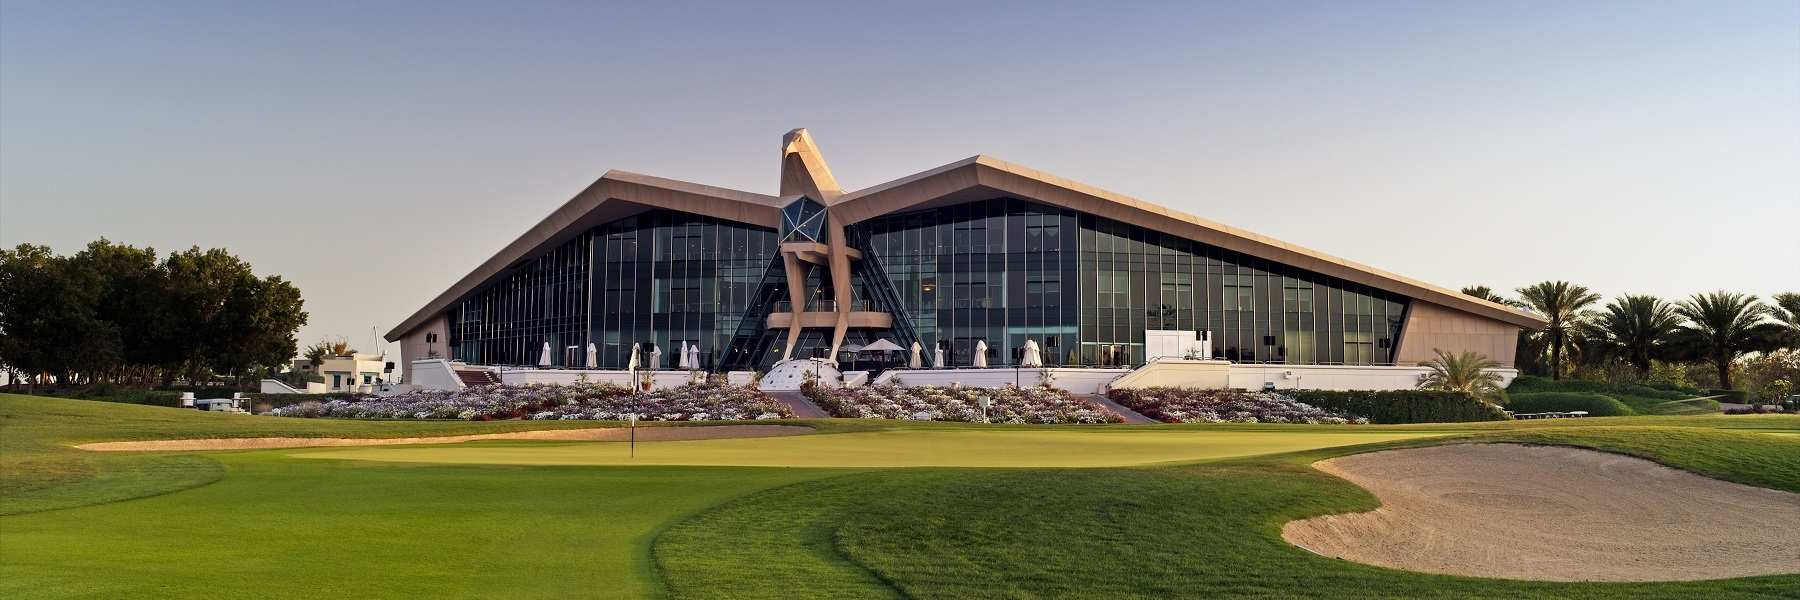 "Abu Dhabi Golf Club ""The Home of Champions"" e vai receber a ""world's elite"" apenas duas semanas antes do Pro-Am"